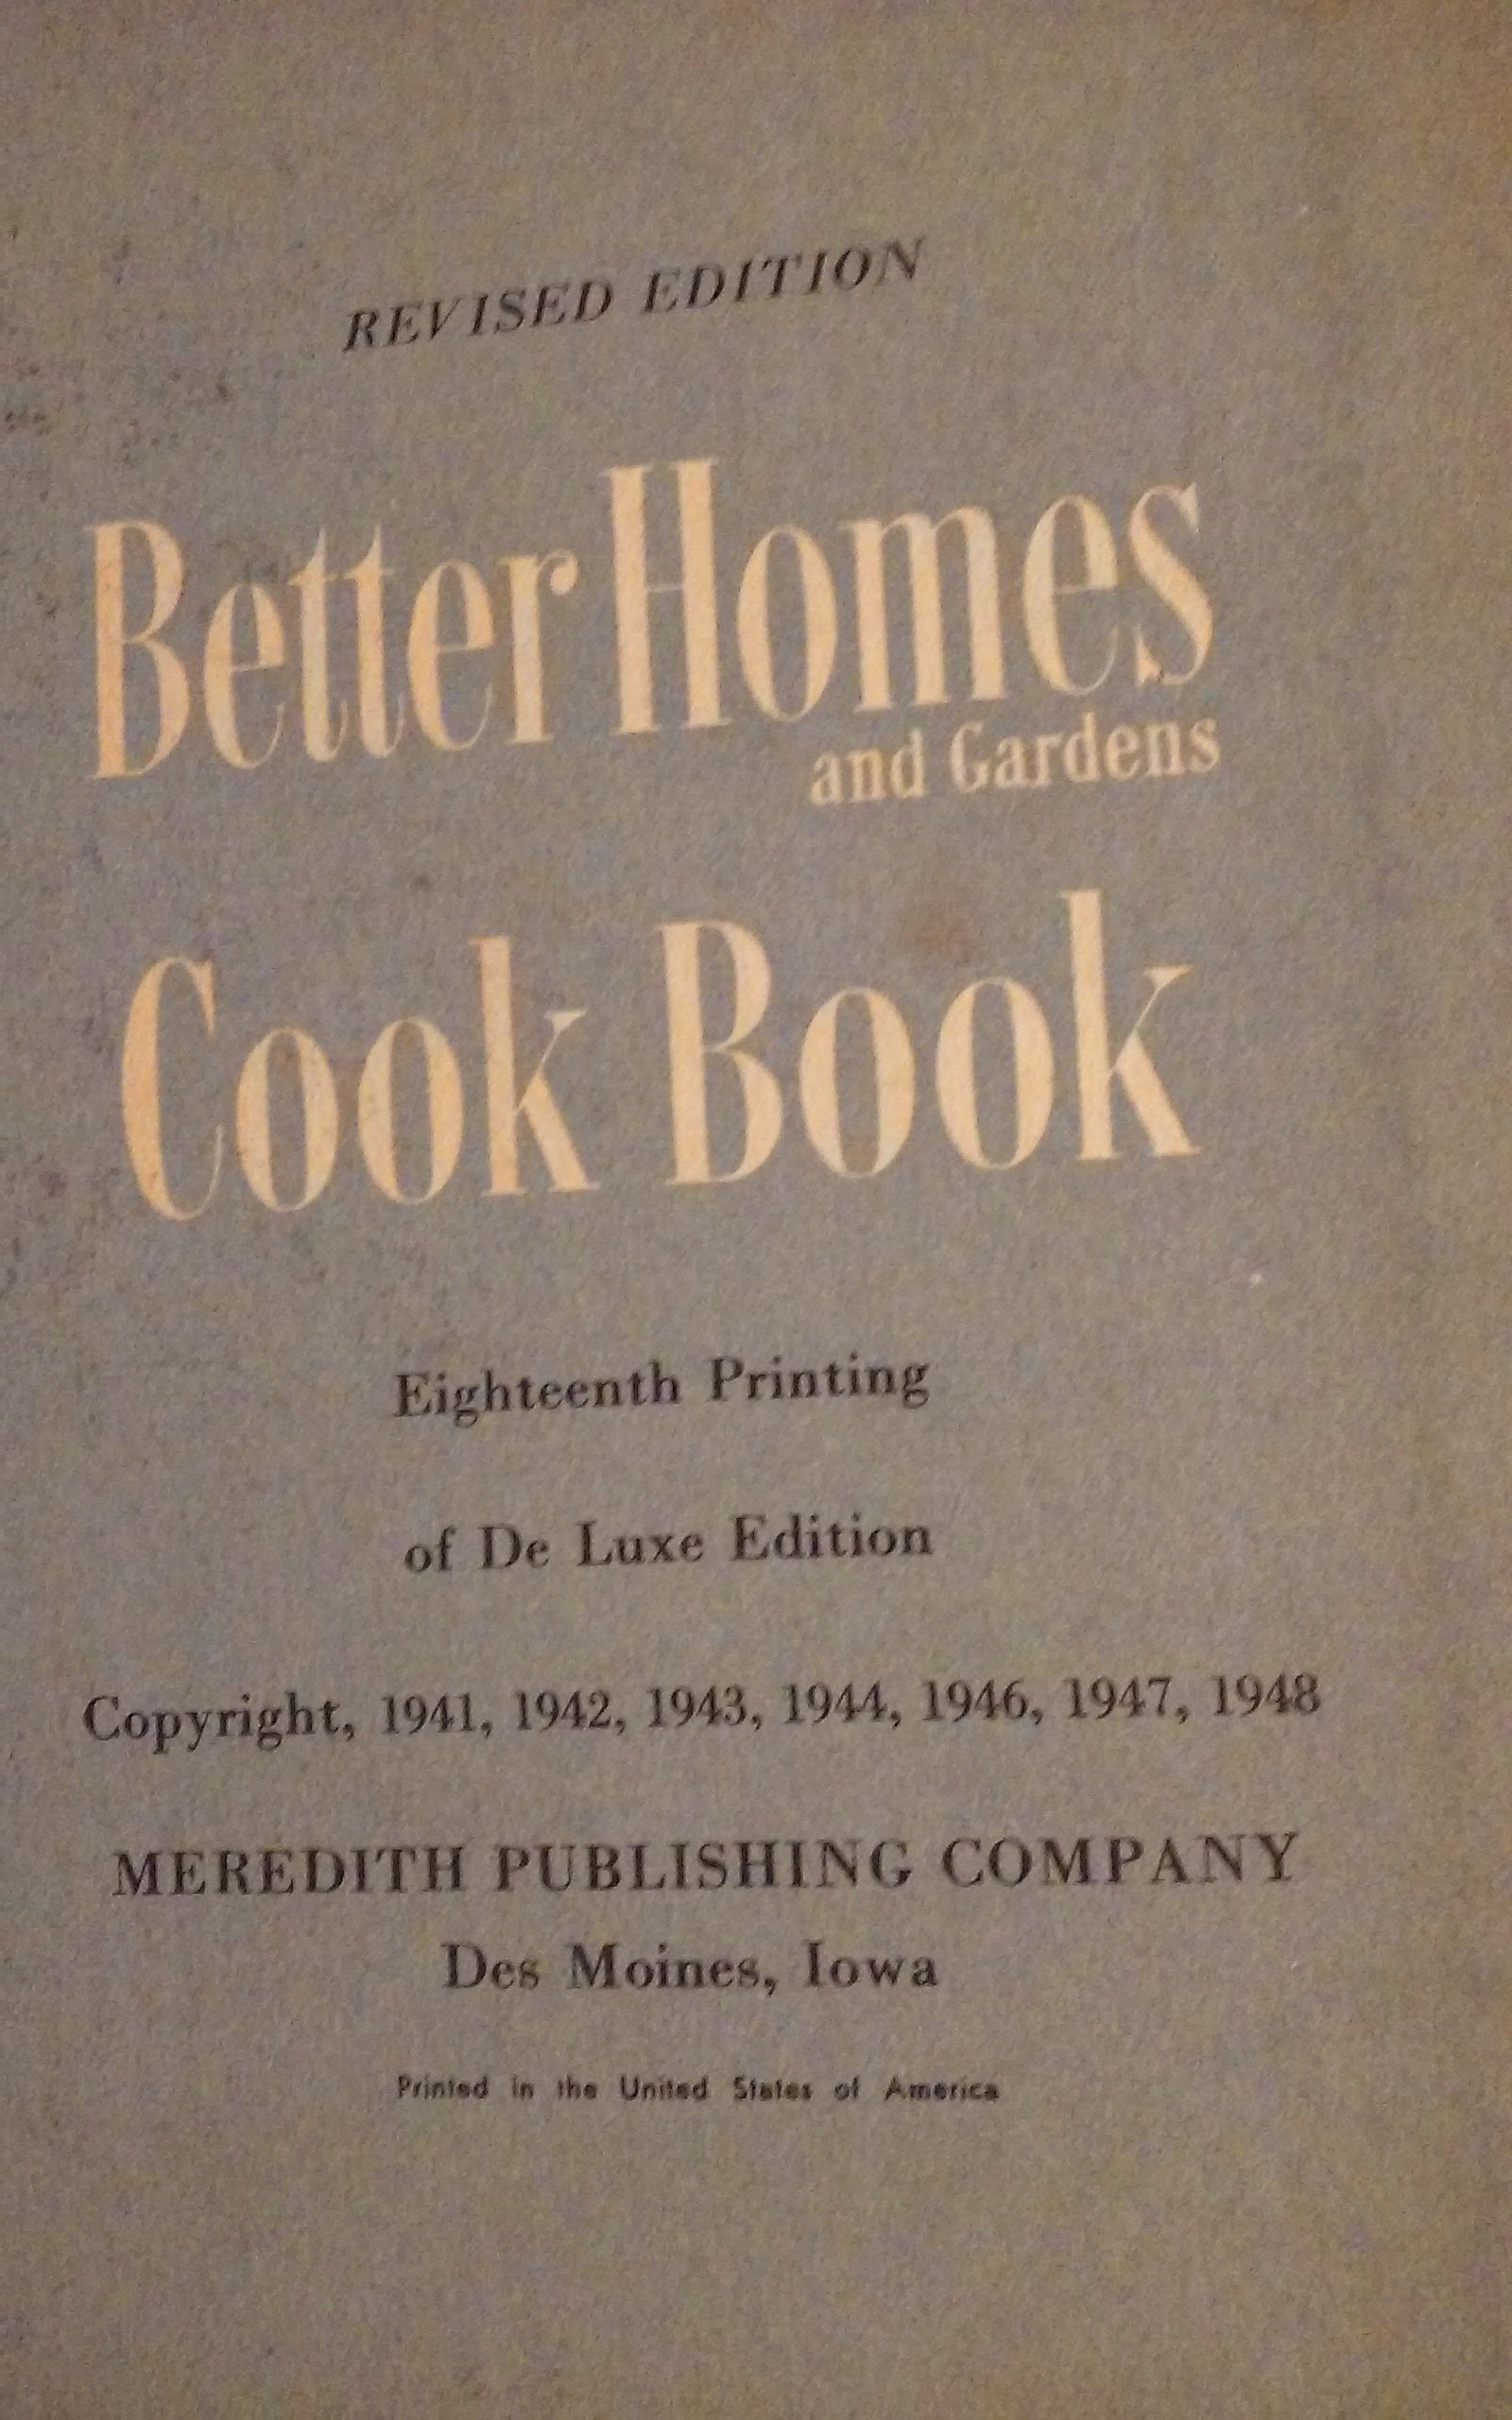 Better Homes and Gardens Cook Book 1950: Food Editors Better Homes & Gardens: Amazon.com: Books